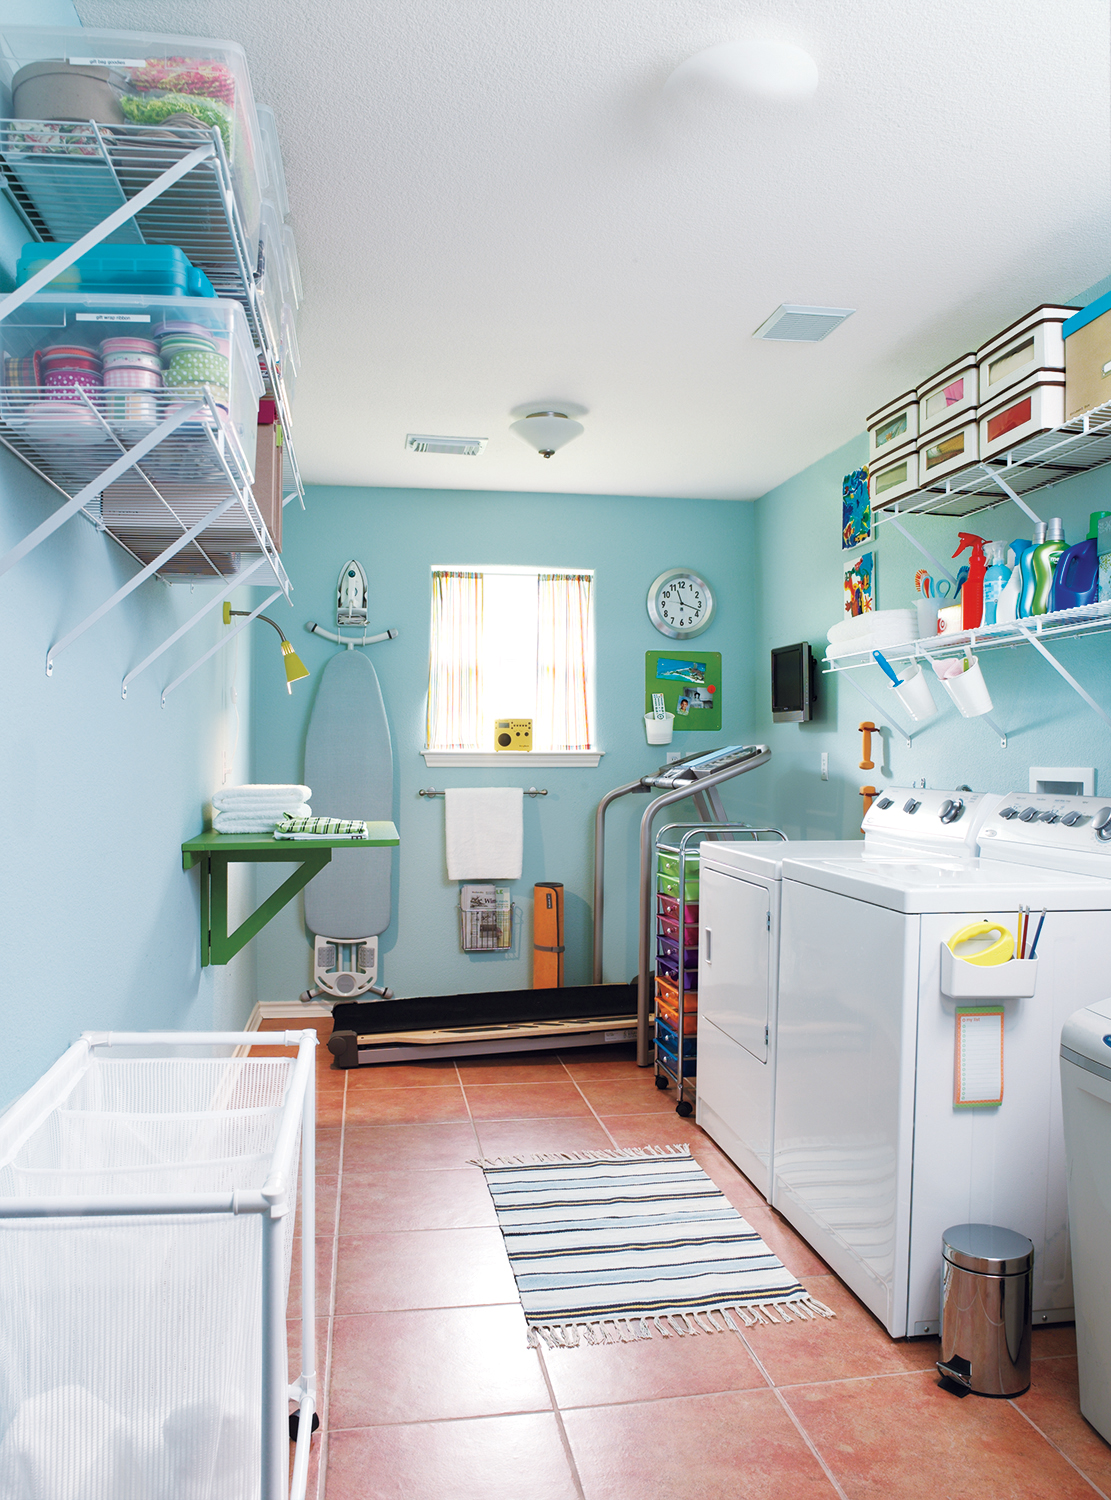 Best Ways to Organize Your Kitchen | Real Simple